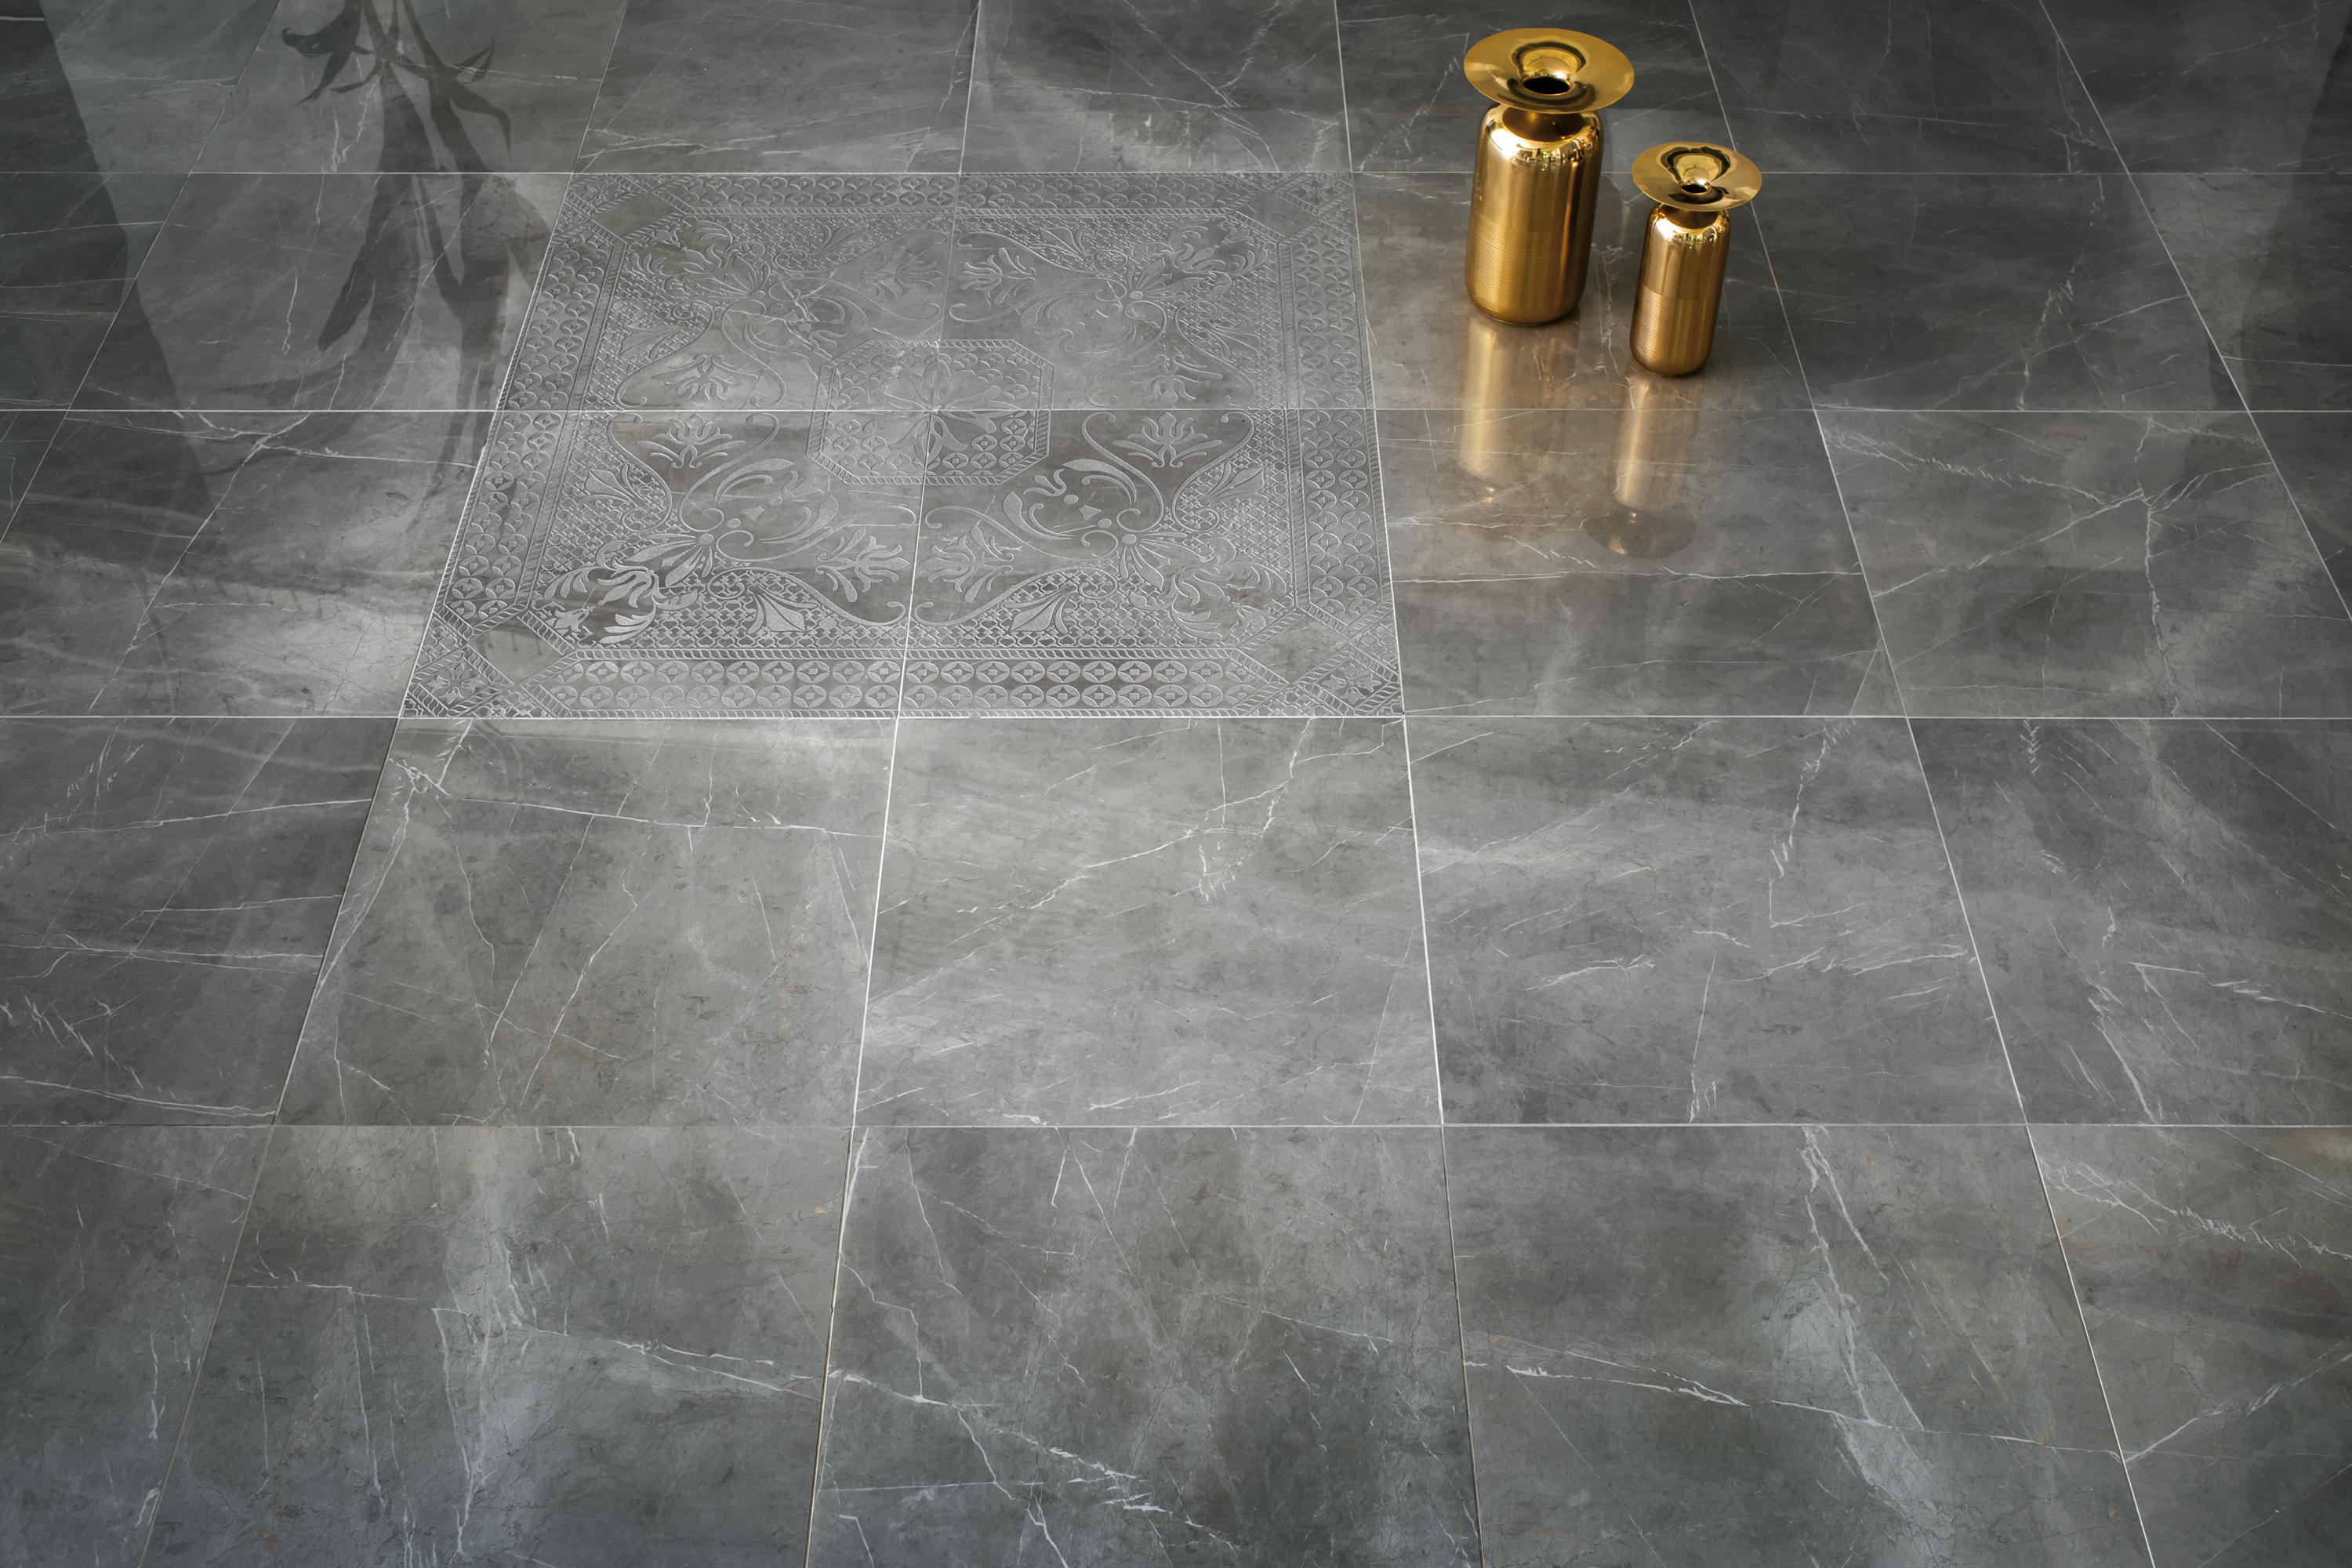 evolutionmarble lux grey ceramic tiles from marazzi group architonic. Black Bedroom Furniture Sets. Home Design Ideas